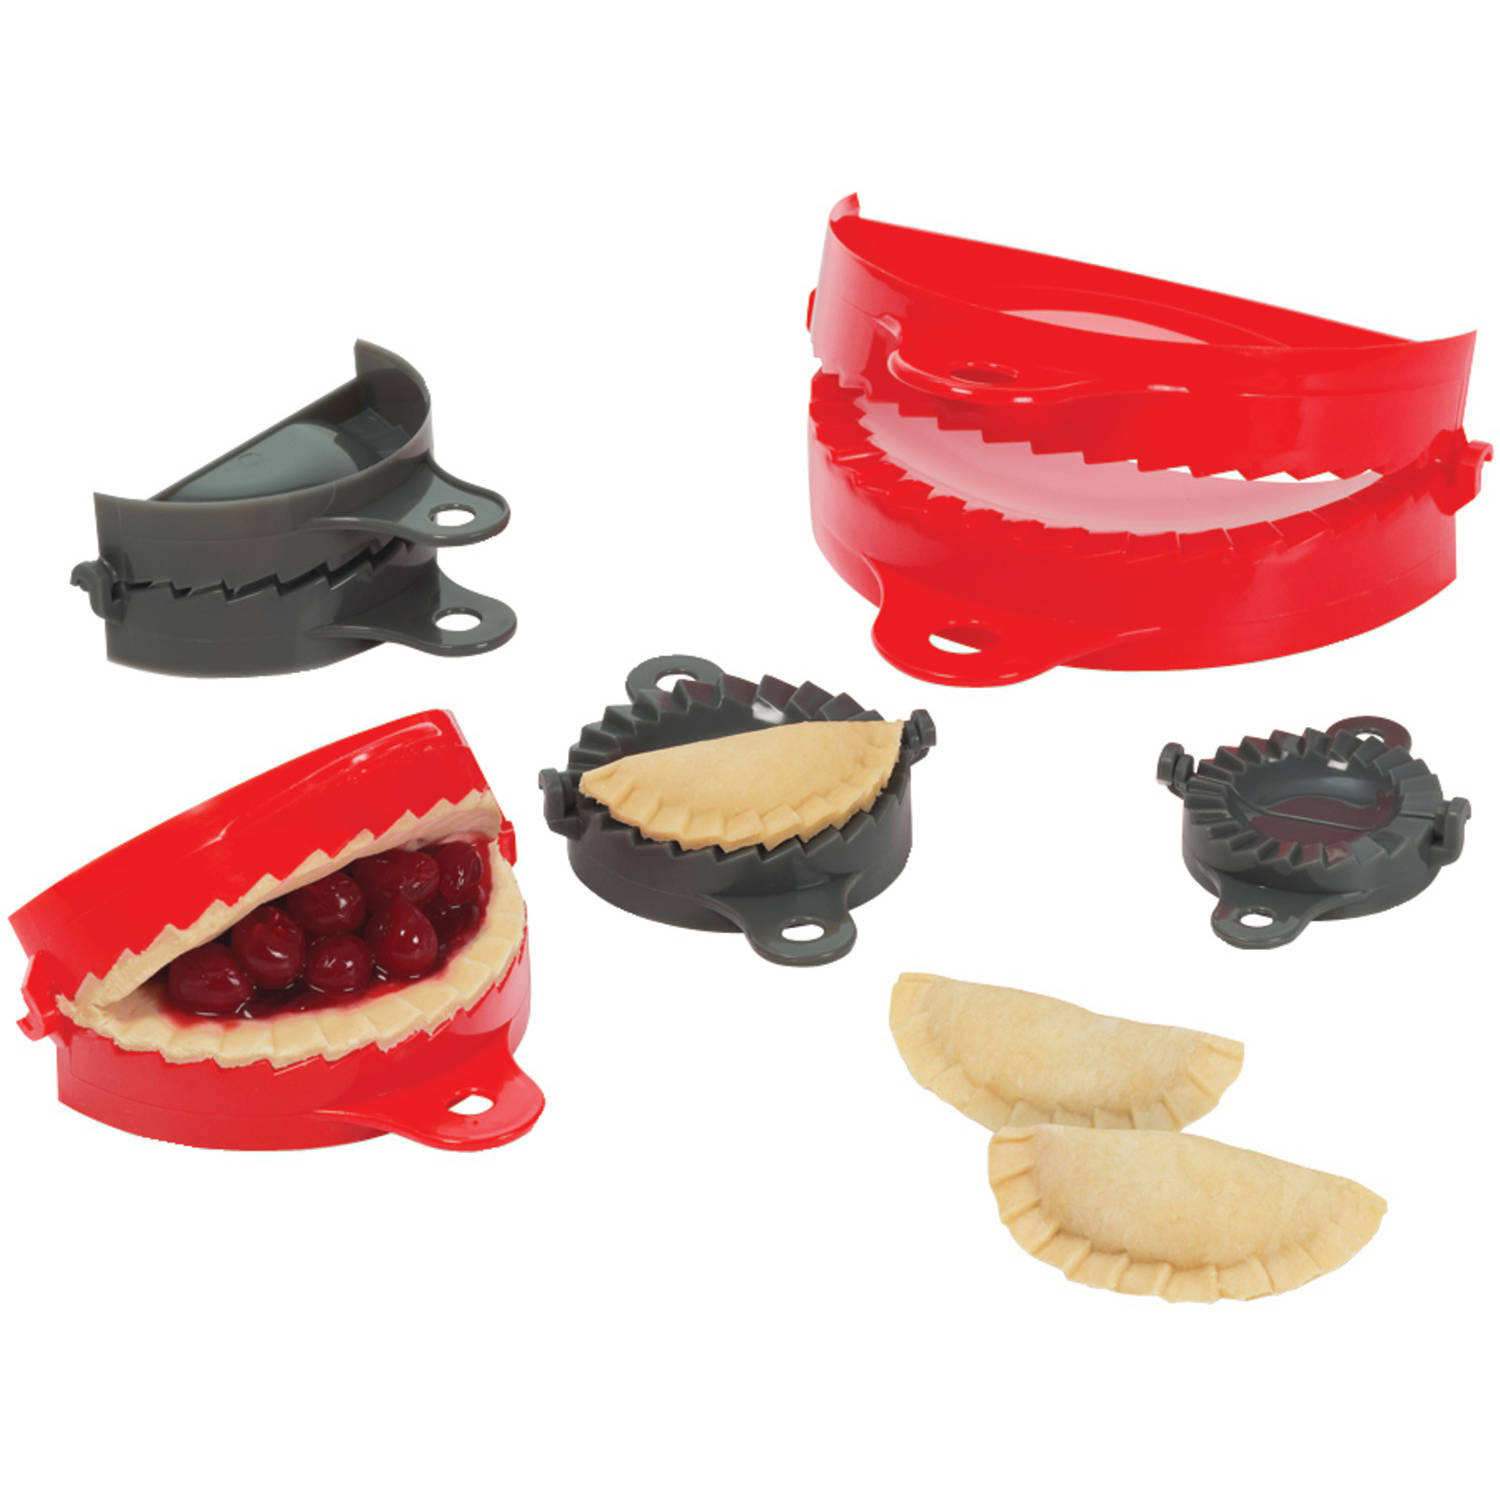 Starfrit 80470-006-new1 Dough Press Set